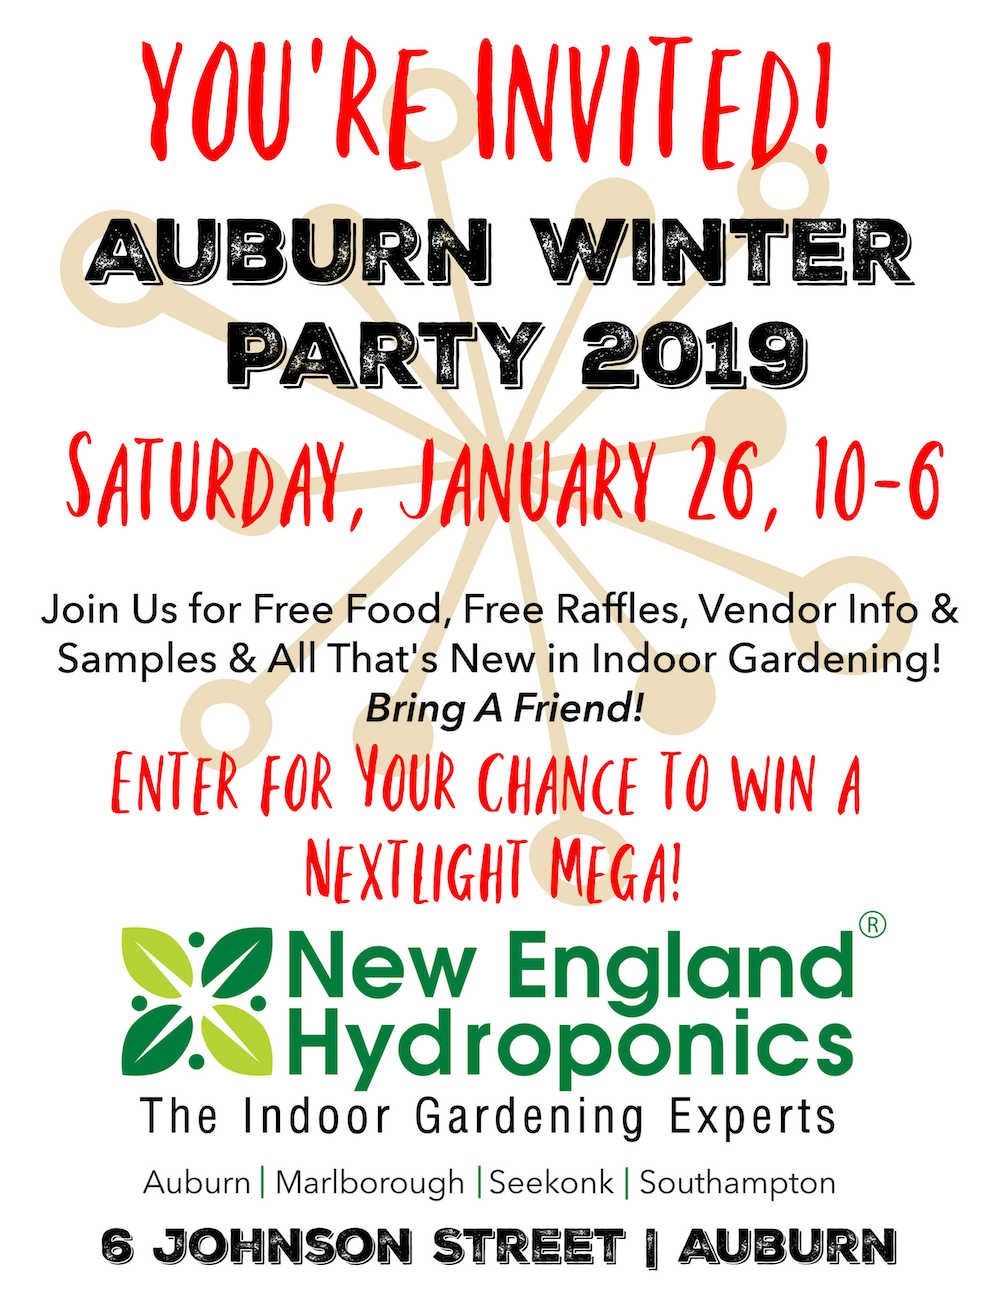 January 26 - Join Us for Our Free WINTER PARTY IN AUBURN!